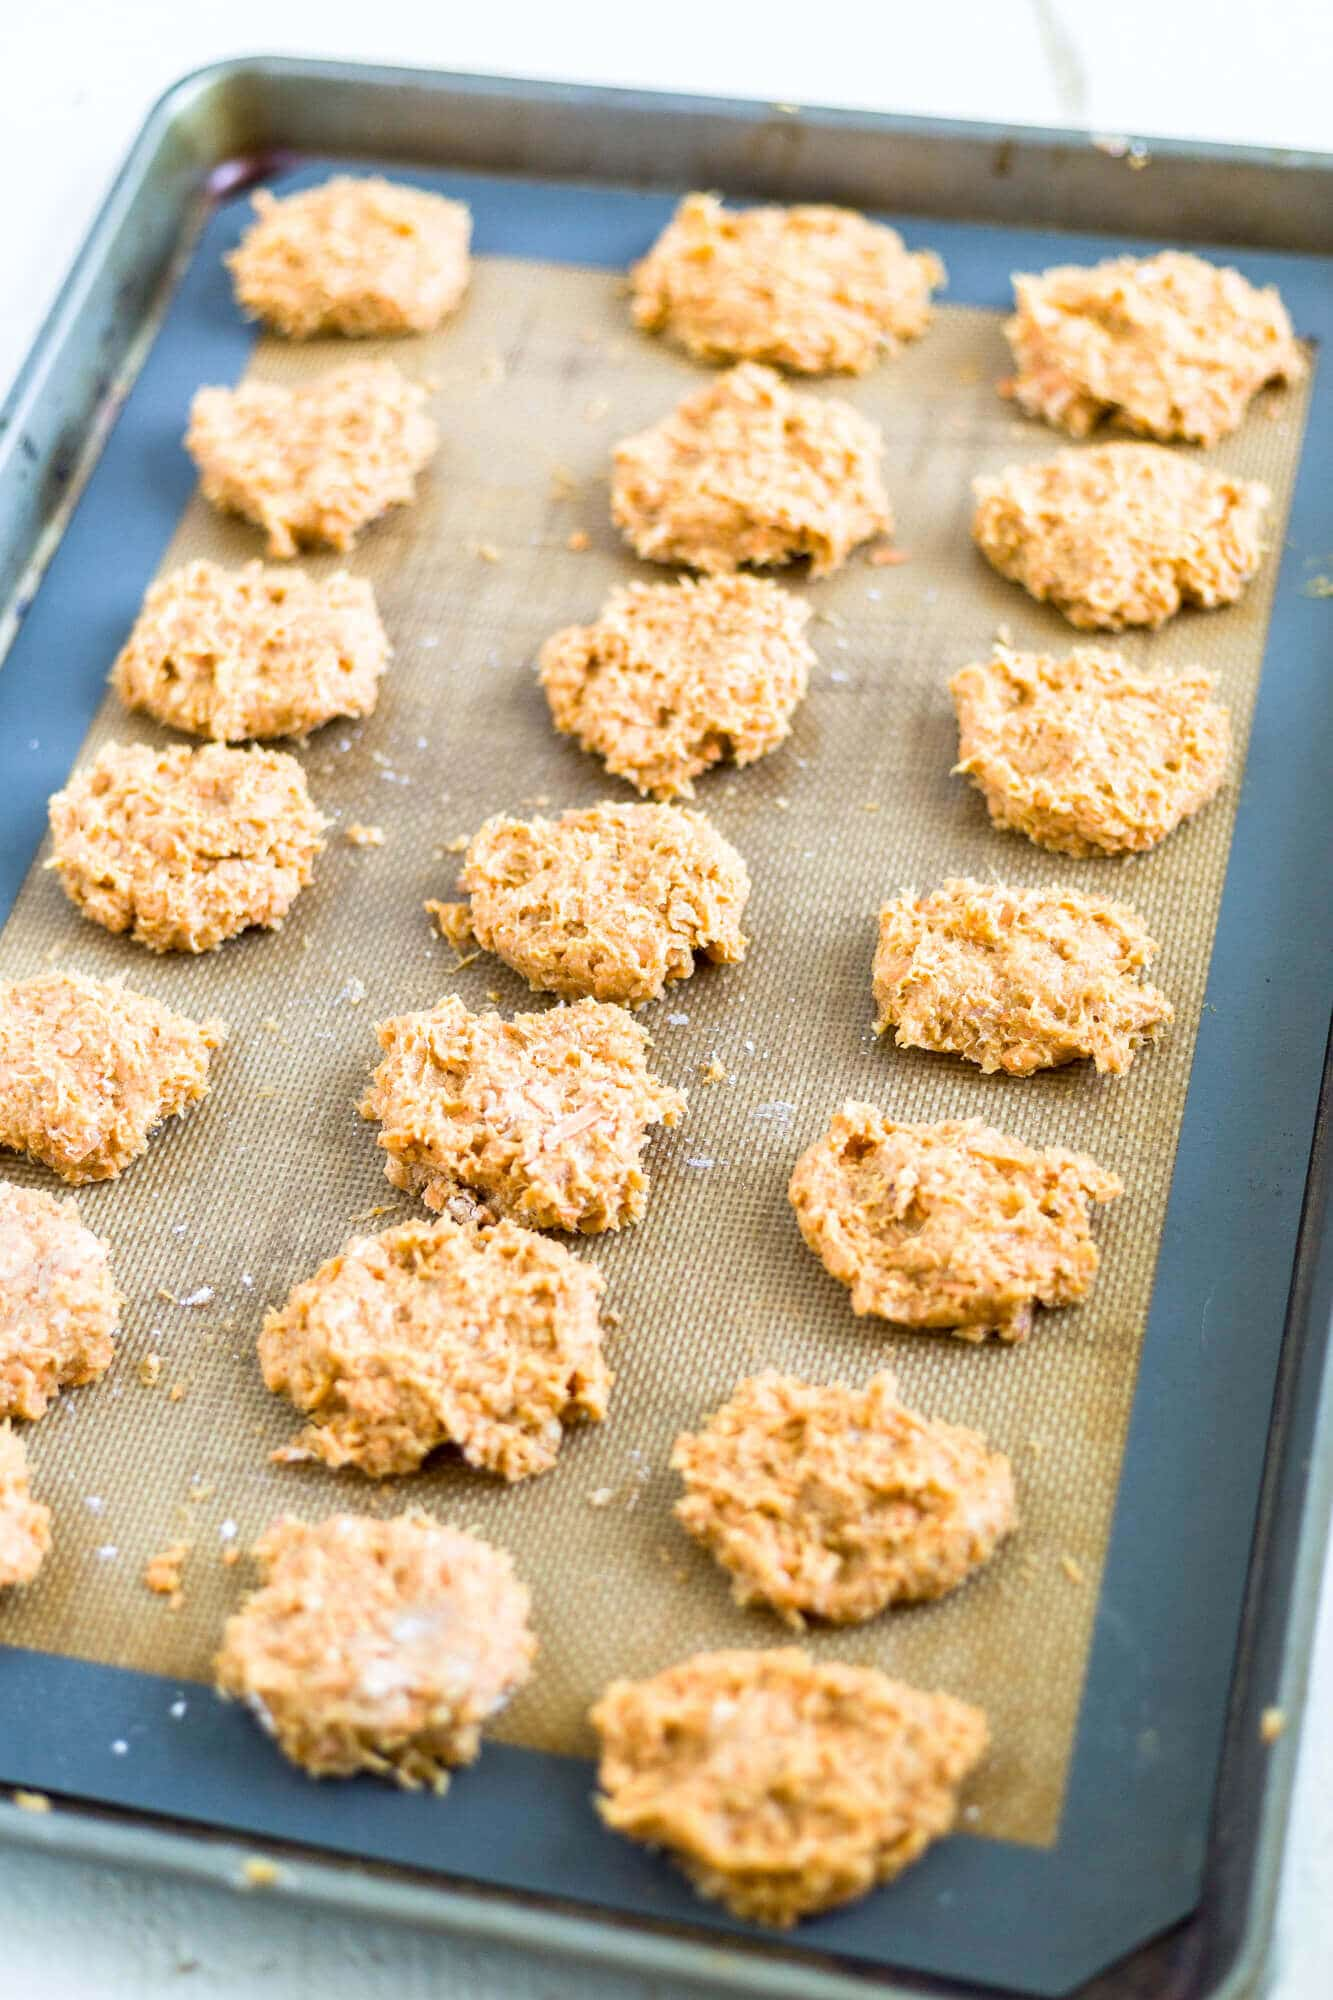 homeamade healthy chicken nuggets on a sheet pan ready to be baked